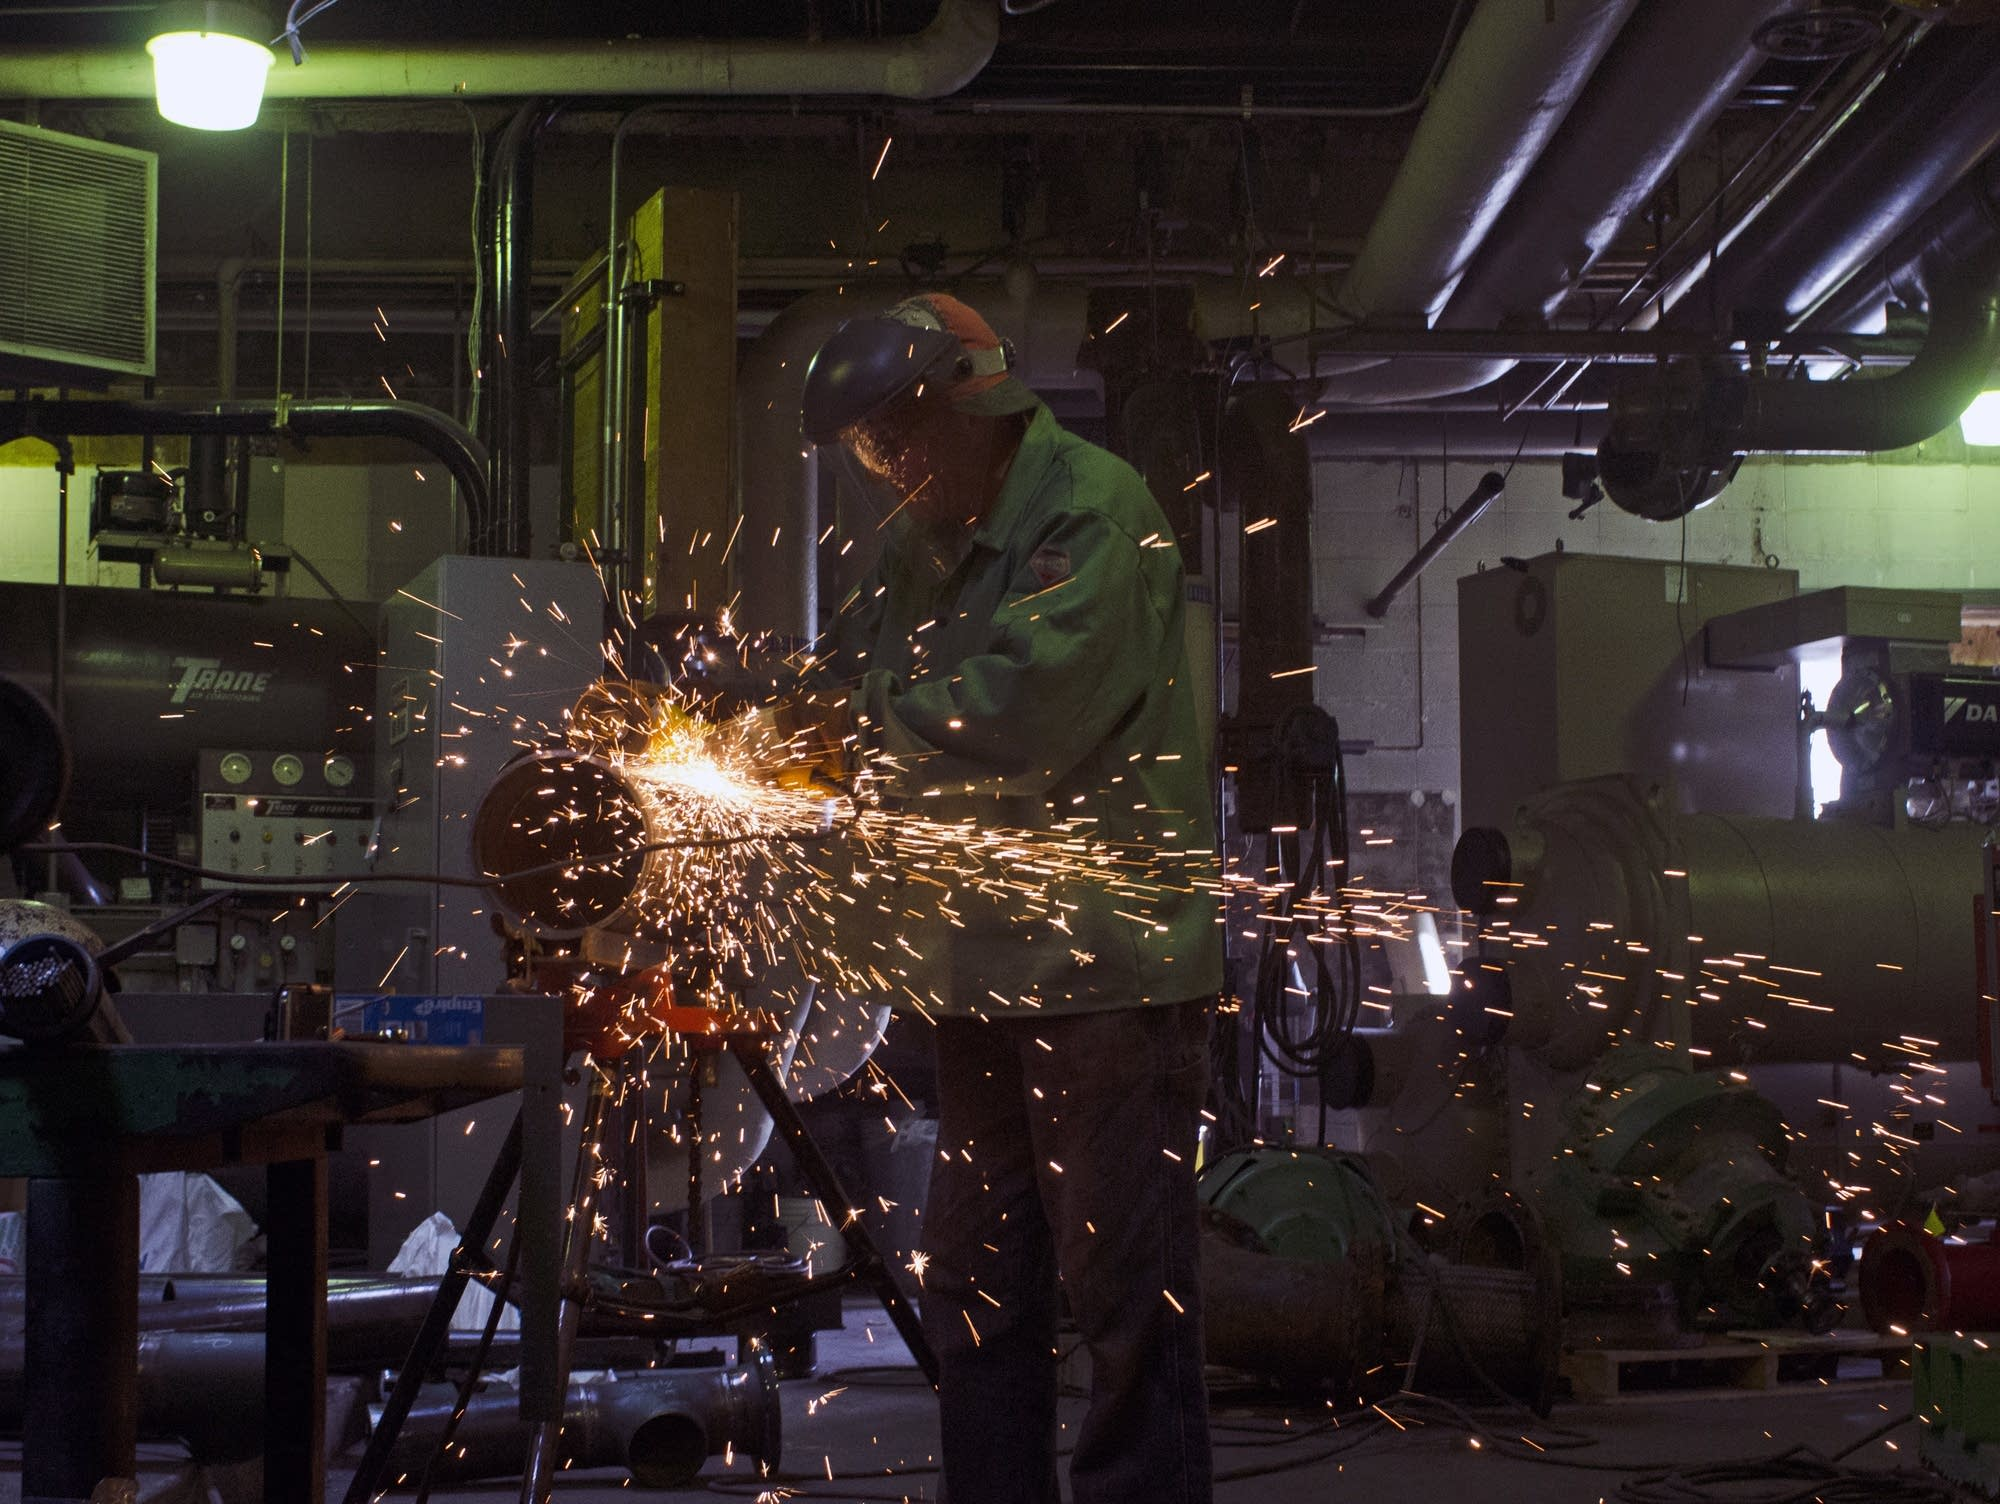 Jay Larson welds in the U.S. Bank boiler room.